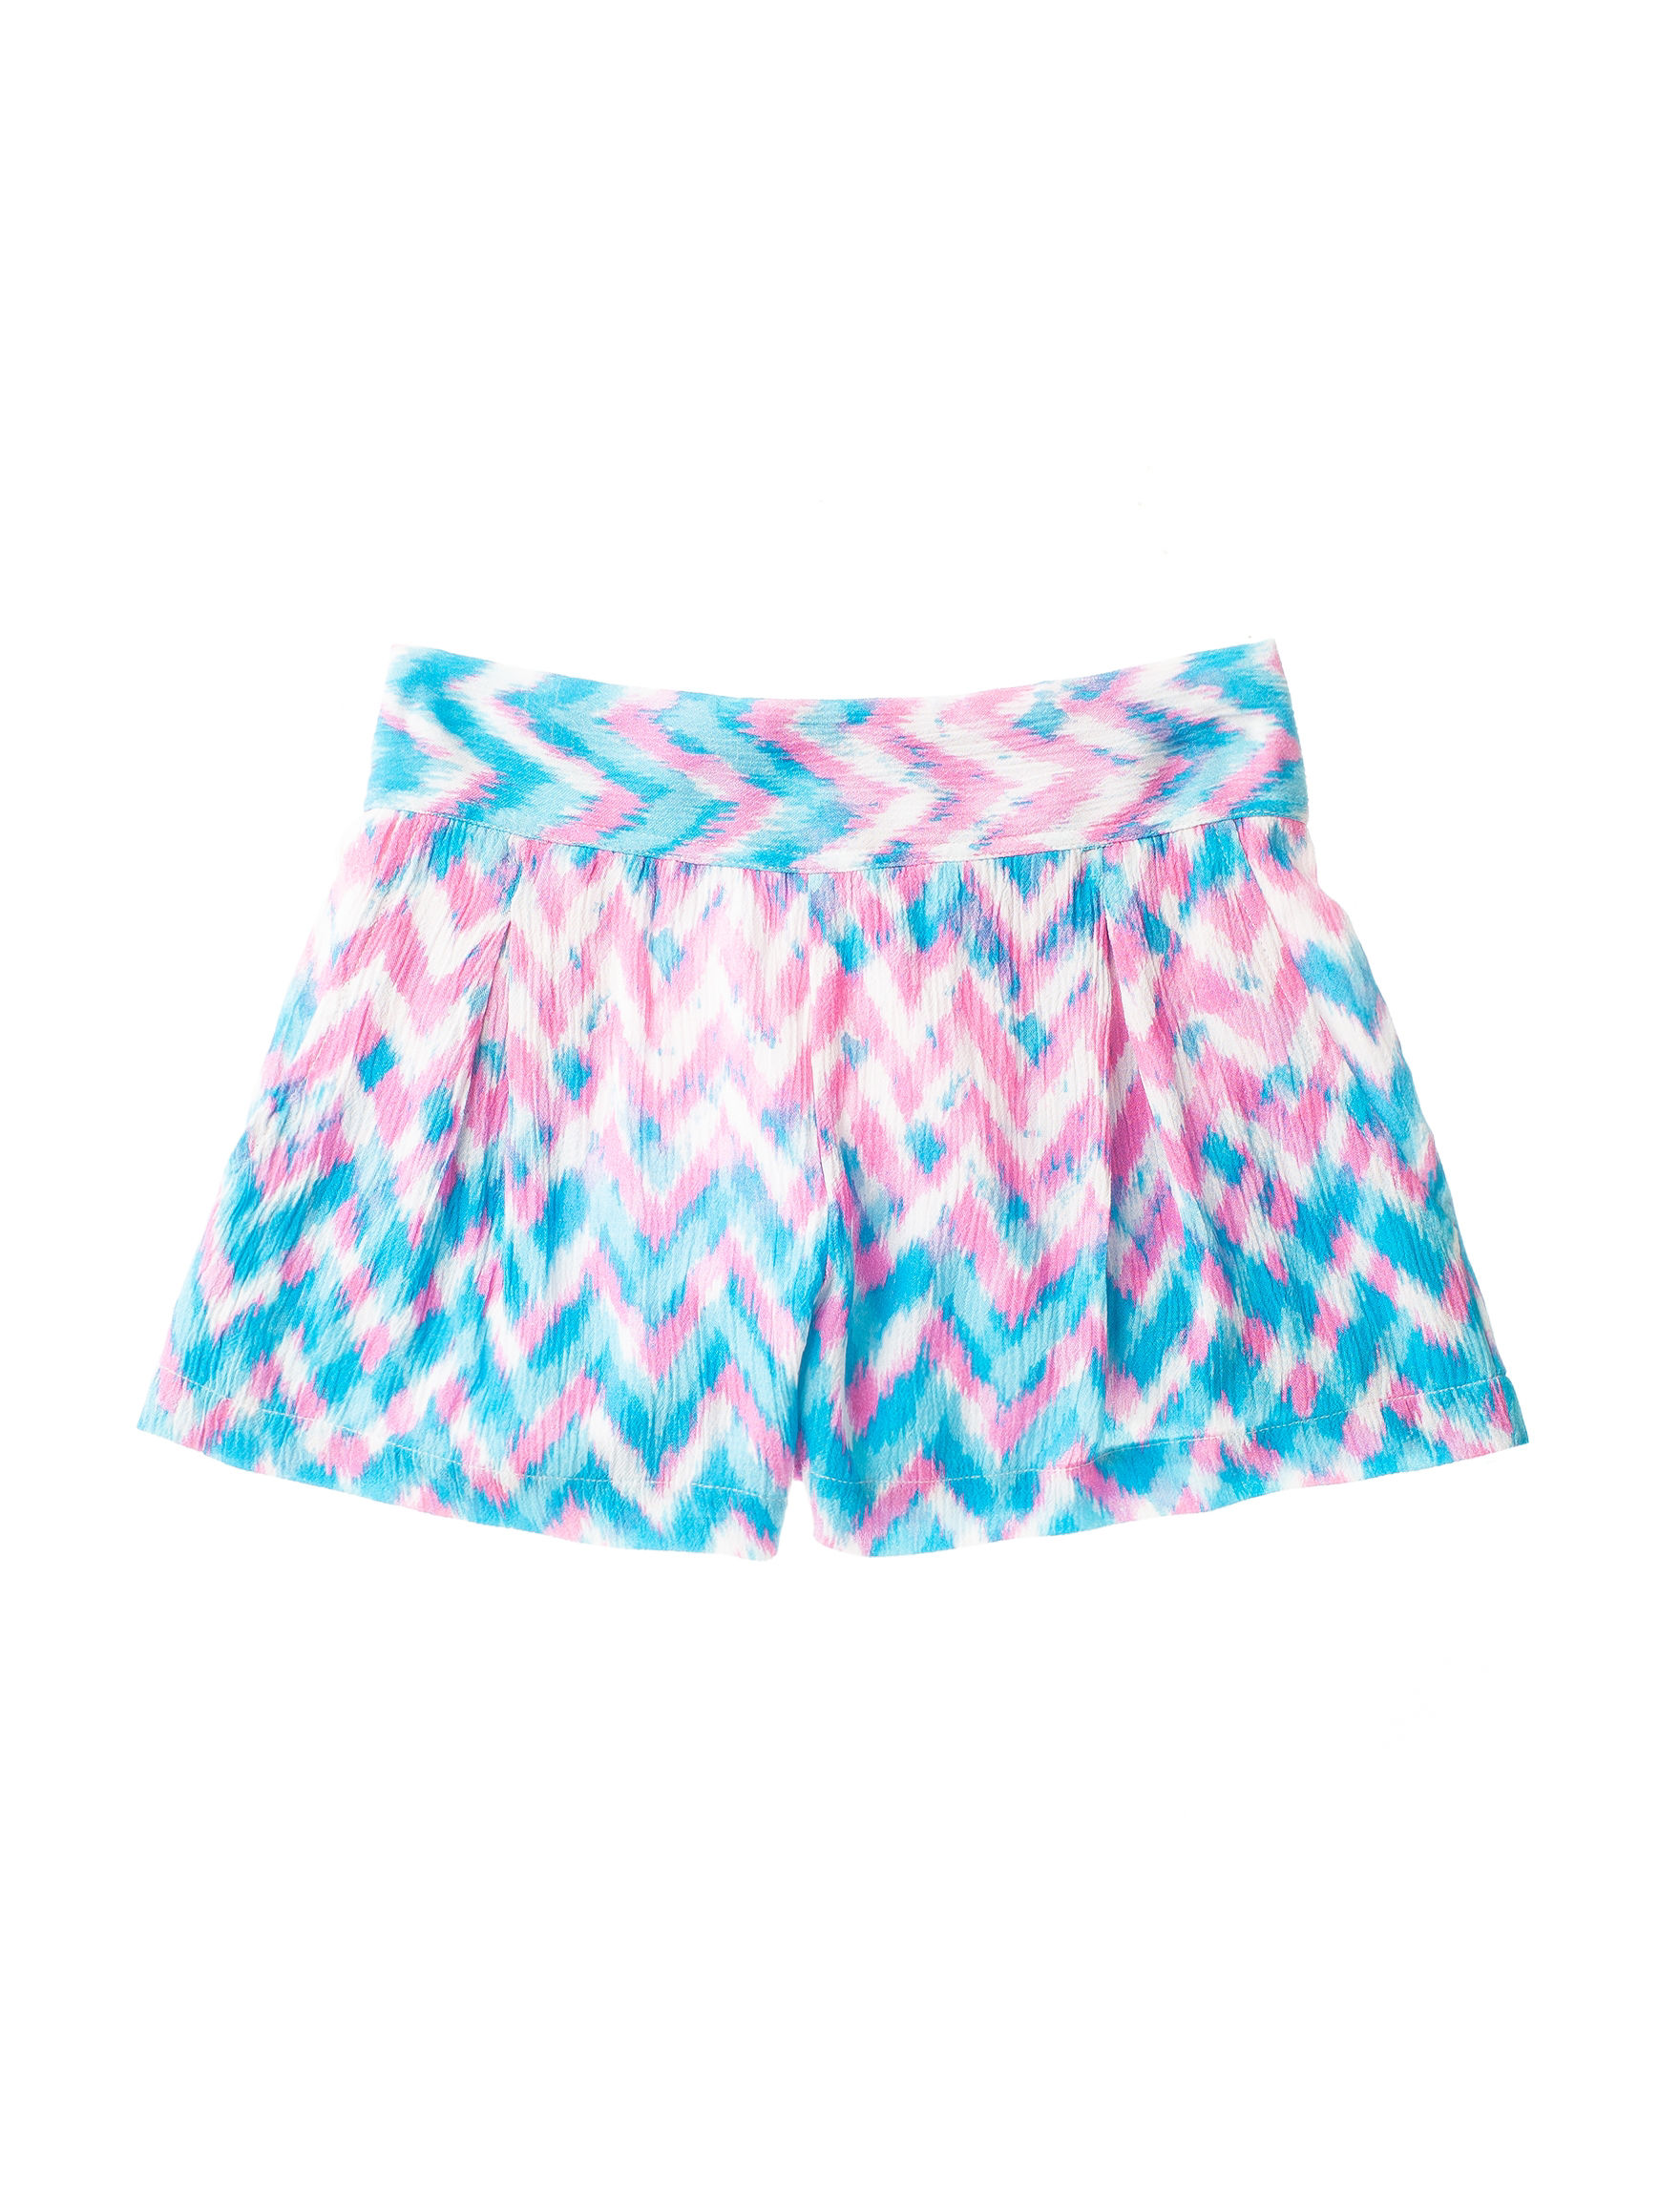 Jessica Simpson Pink / Blue Relaxed